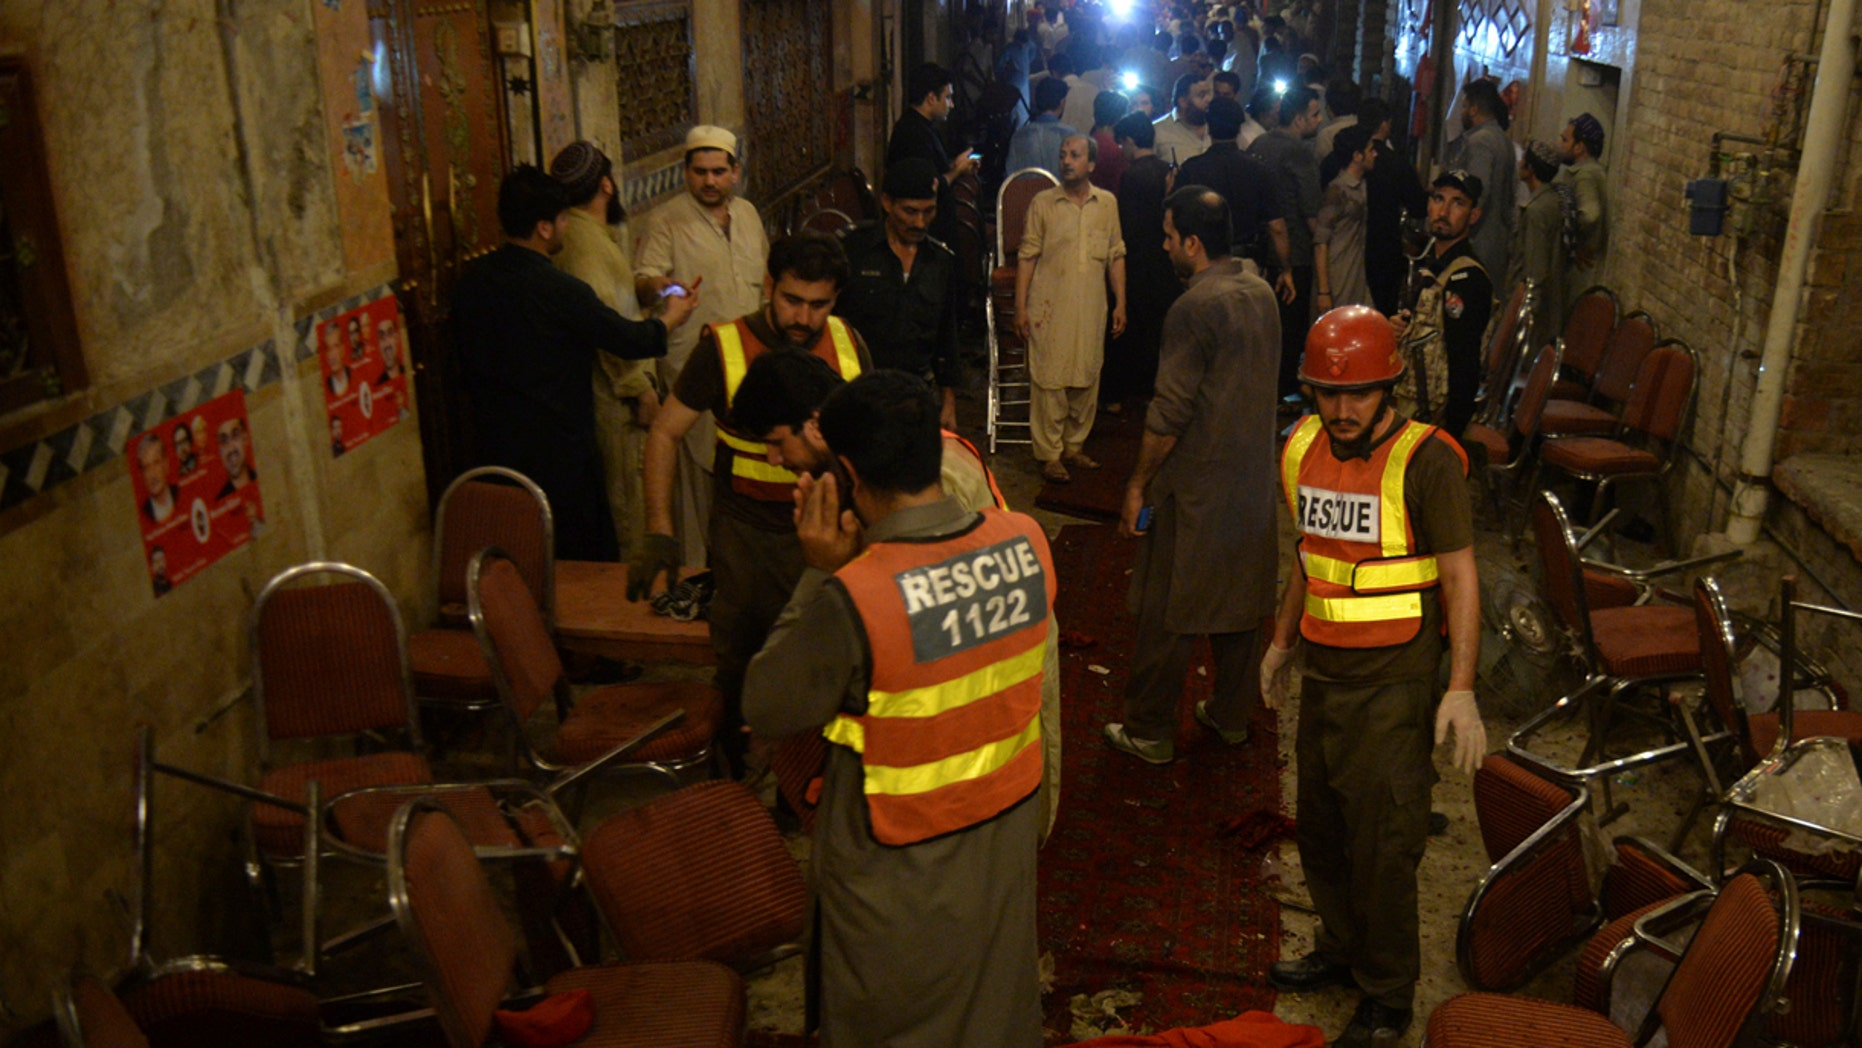 Pakistani rescue volunteers visit at a site of blast in Peshawar, Pakistan, Tuesday, July 10, 2018. Police in Pakistan say a suicide bomber has killed a secular party leader and many supporters during an election rally in the northwestern city of Peshawar. (AP Photo/Muhammad Sajjad)